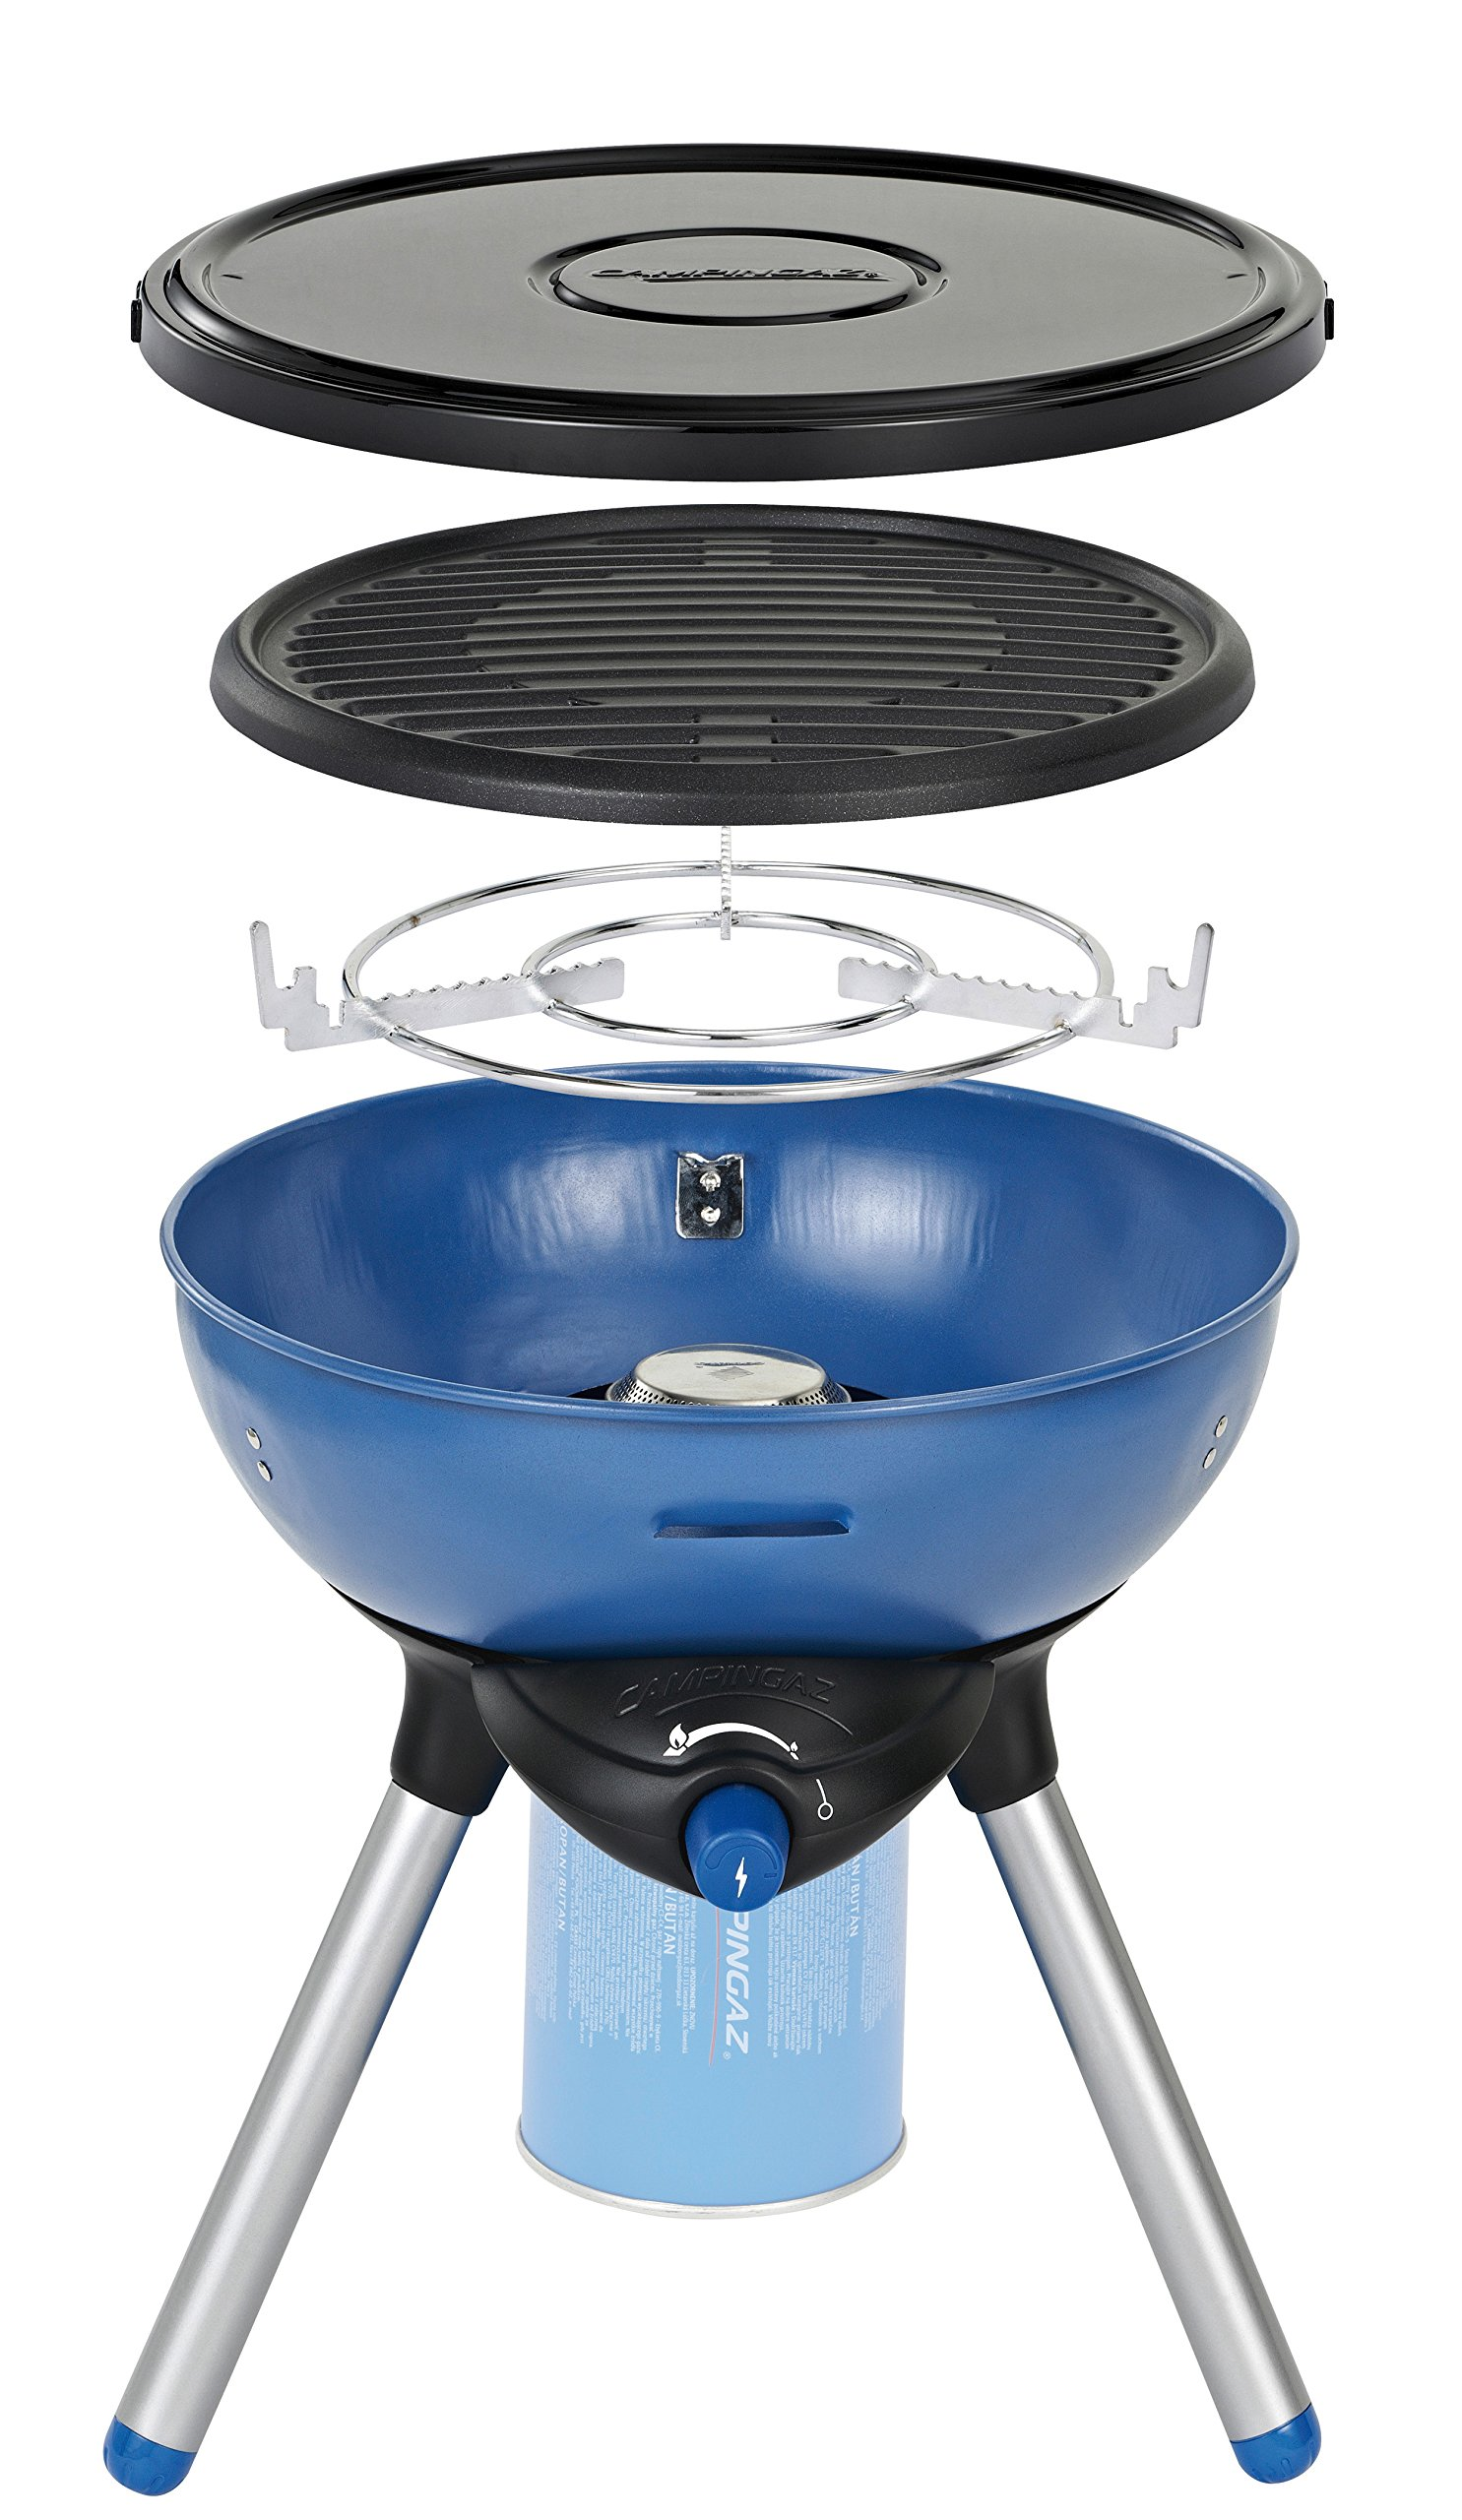 Campingaz Party Grill 200 Camping Stove, All in One portable Camping BBQ, Outdoor Grill & Stove, Small Gas Barbecue 2.000 Watt, Runs on CV 470 Plus Gas Cartridge 1